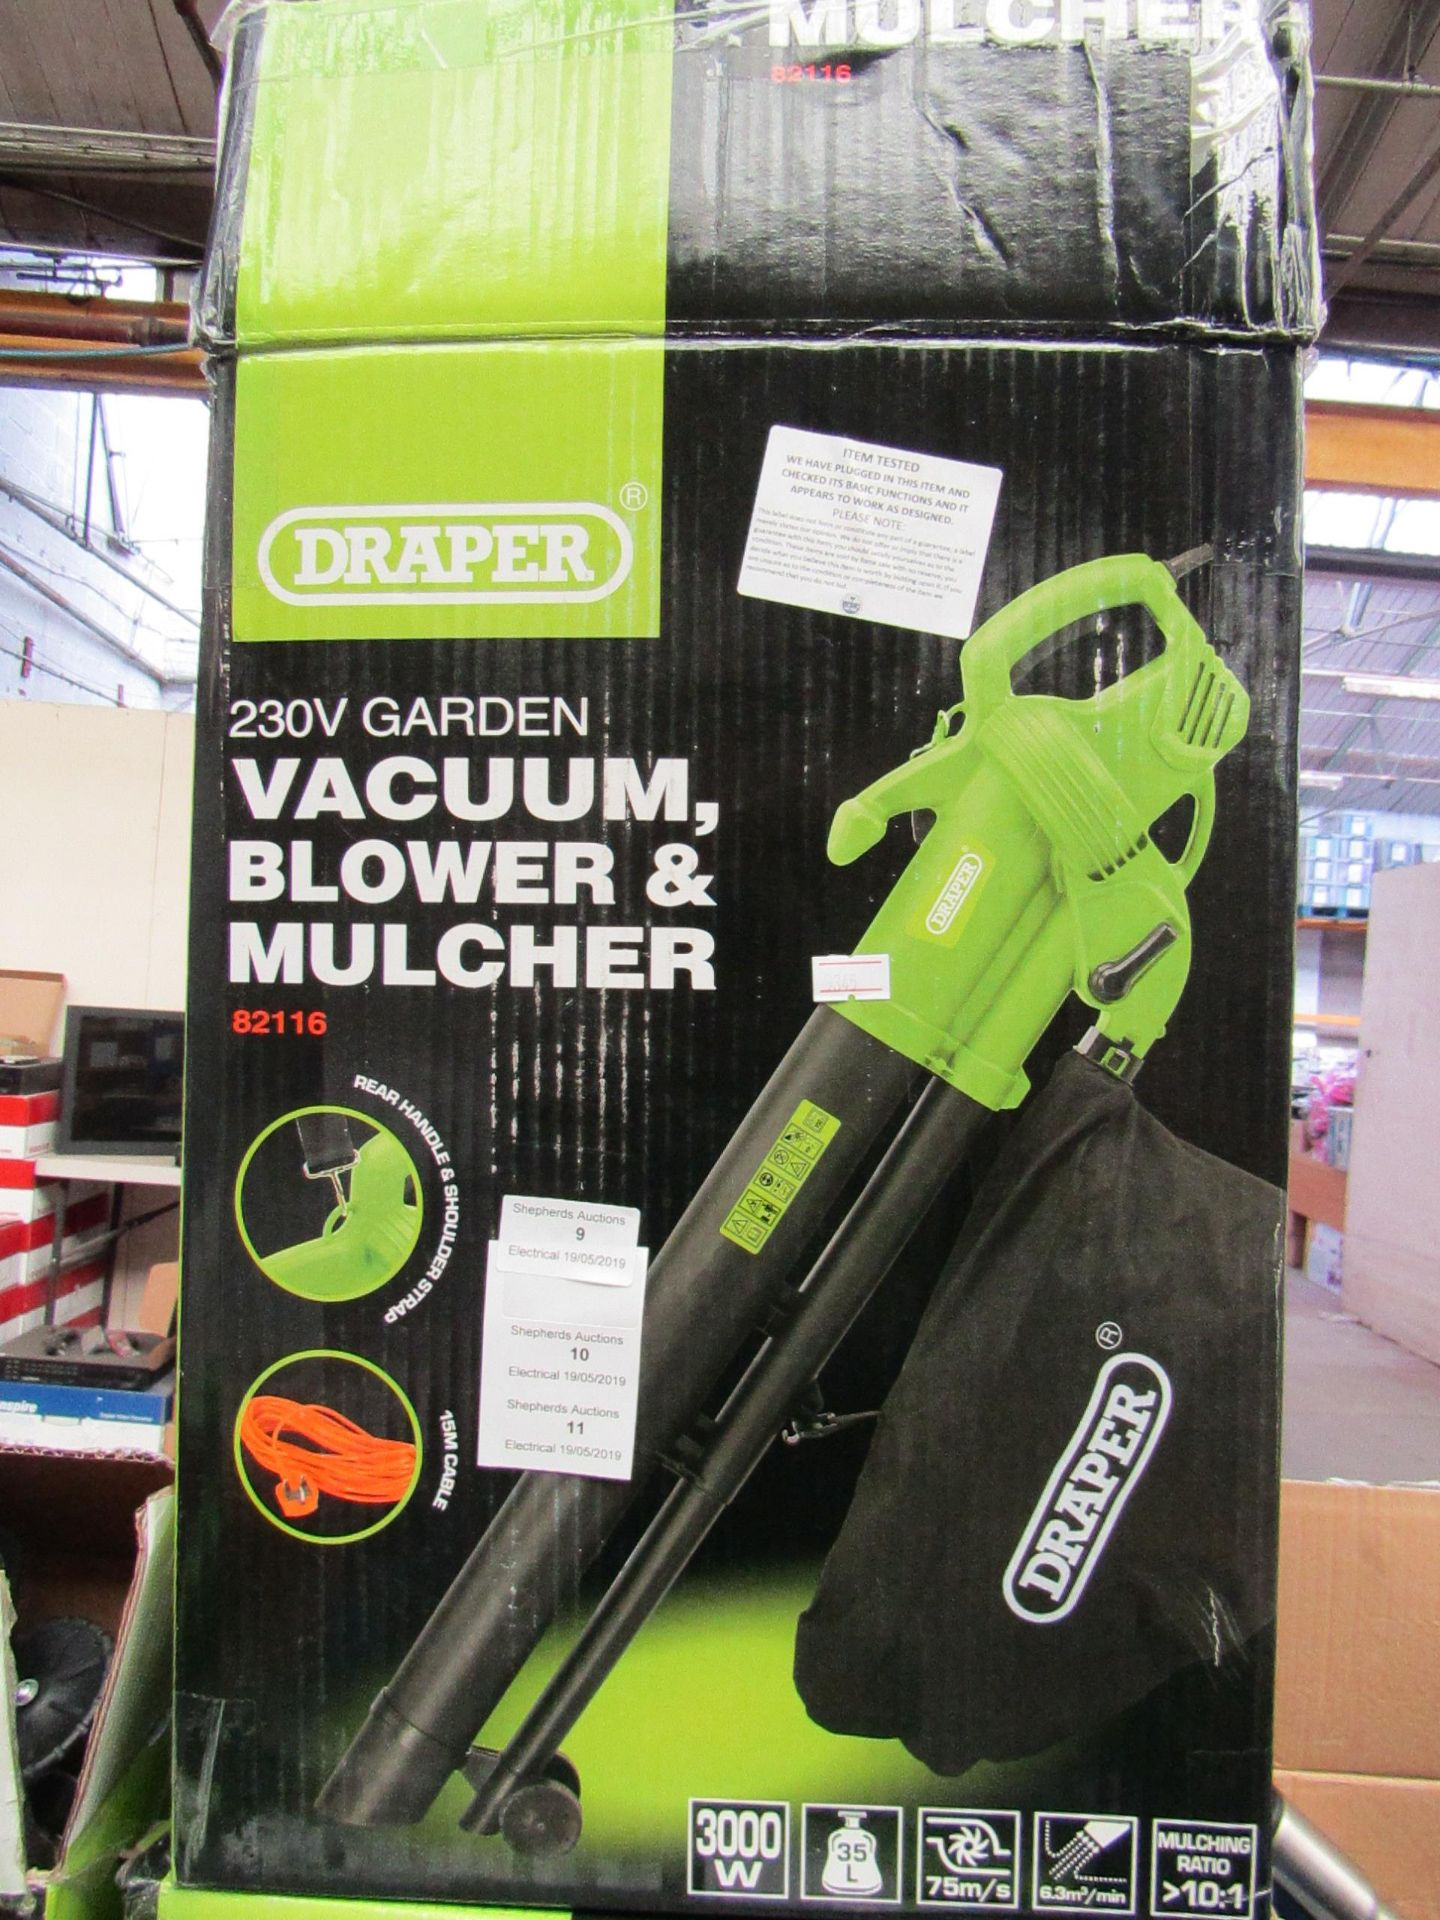 Lot 11 - Draper 230V Garden Vacuum, Blower & Mulcher , Tested Working & Boxed